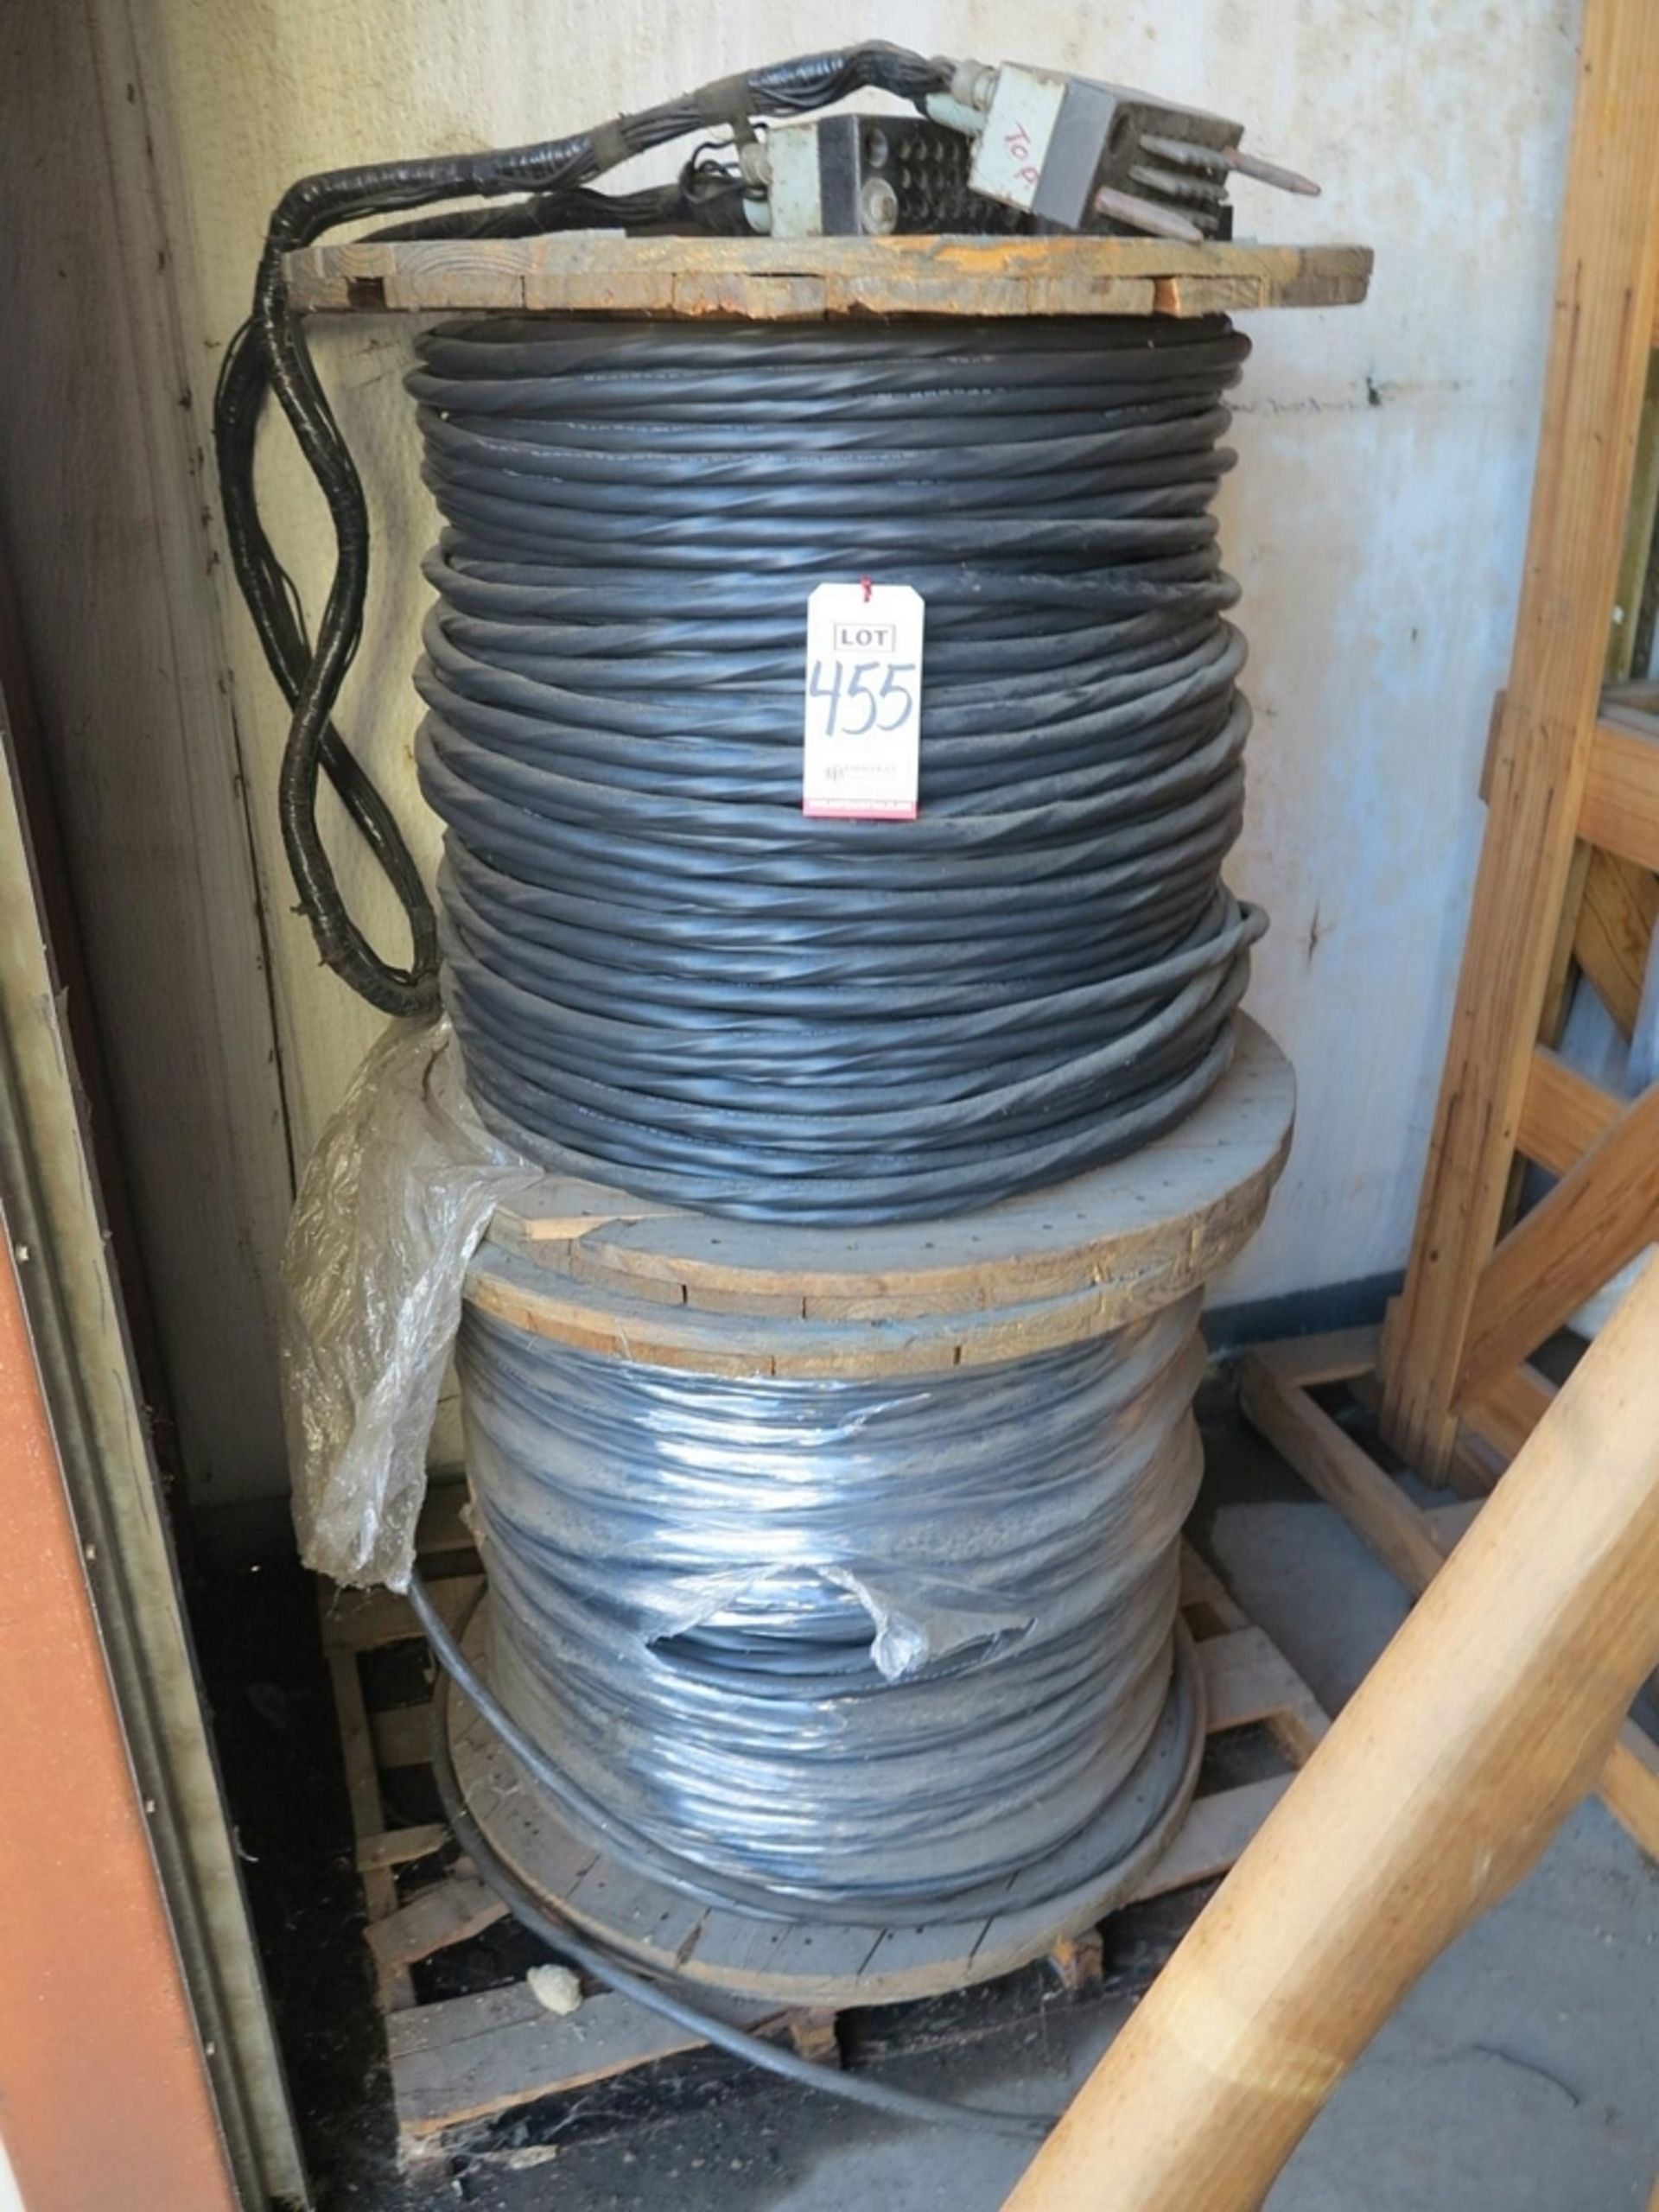 Lot 455 - LOT - (4) SPOOLS OF HIGH VOLTAGE ELECTRIC CABLE